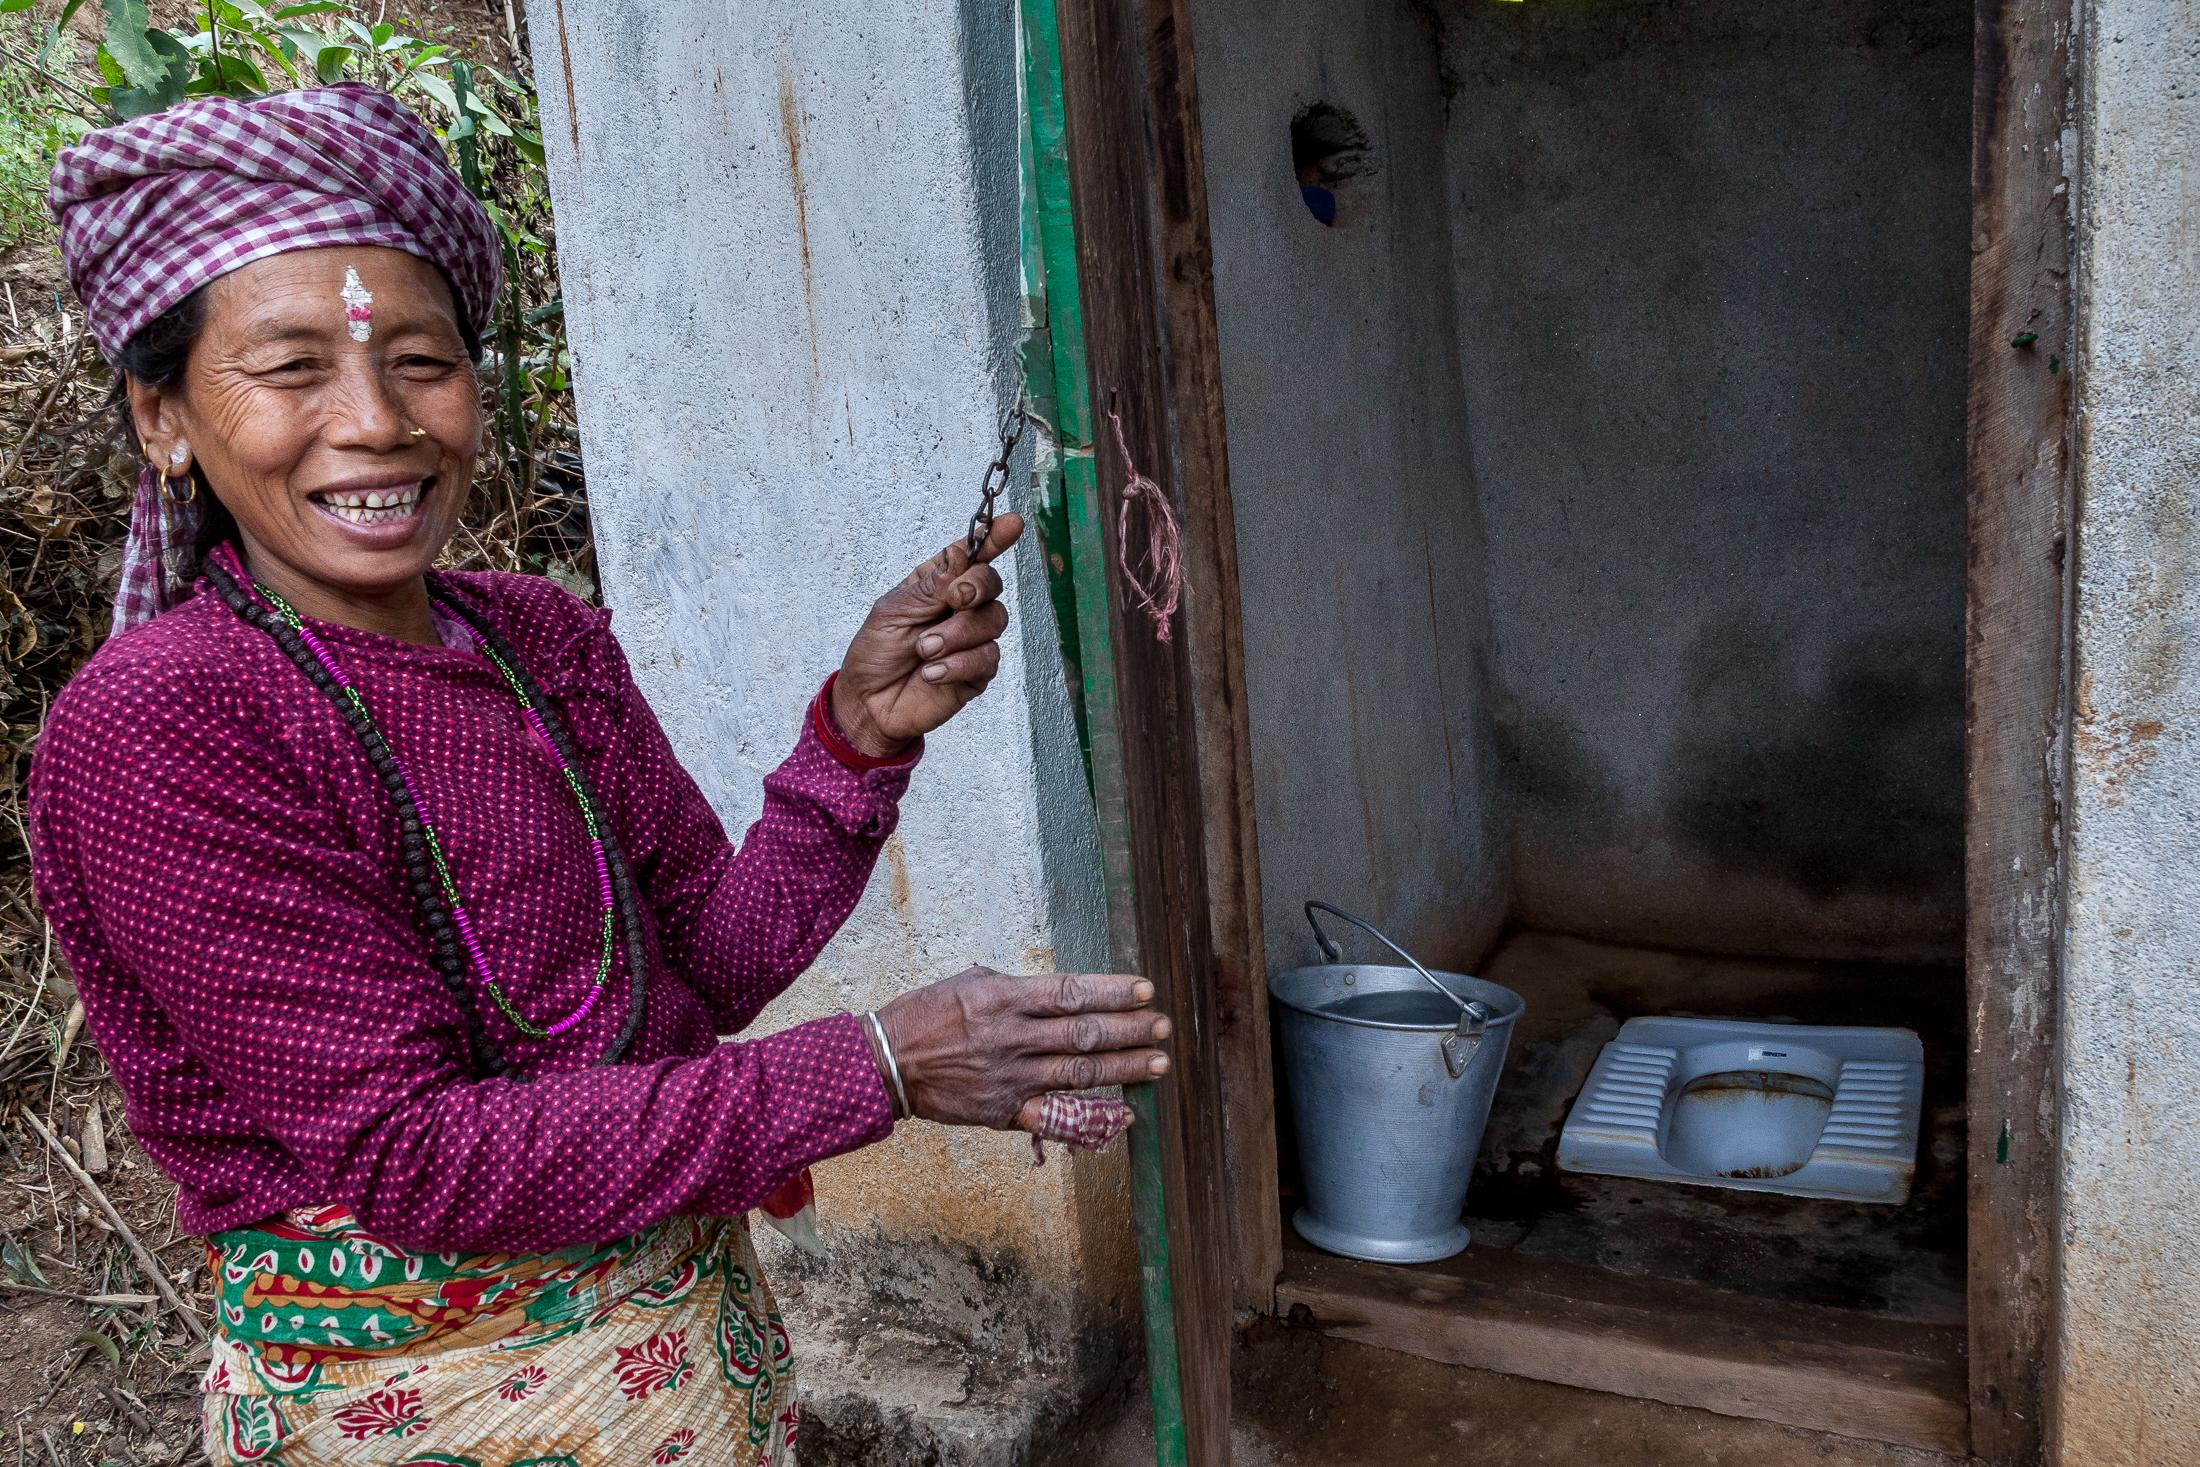 RAUTA KHANITAR, NEPAL - MARCH 01, 2015: Dilmaya Magar, 42 years old, smiles while opening one of the toilets installed by the NEWAH organization in Rauta Khanitar, Nepal on March 01, 2015. Despite Nepal's extensive natural resources, access to clean and affordable water remains a problem throughout the country. For many people in the more remote mountains and hills, water sources are often far away and not necessarily safe, and the simple act of fetching water can drain a community's human resources. Photo: © Omar Havana for Water Aid Nepal